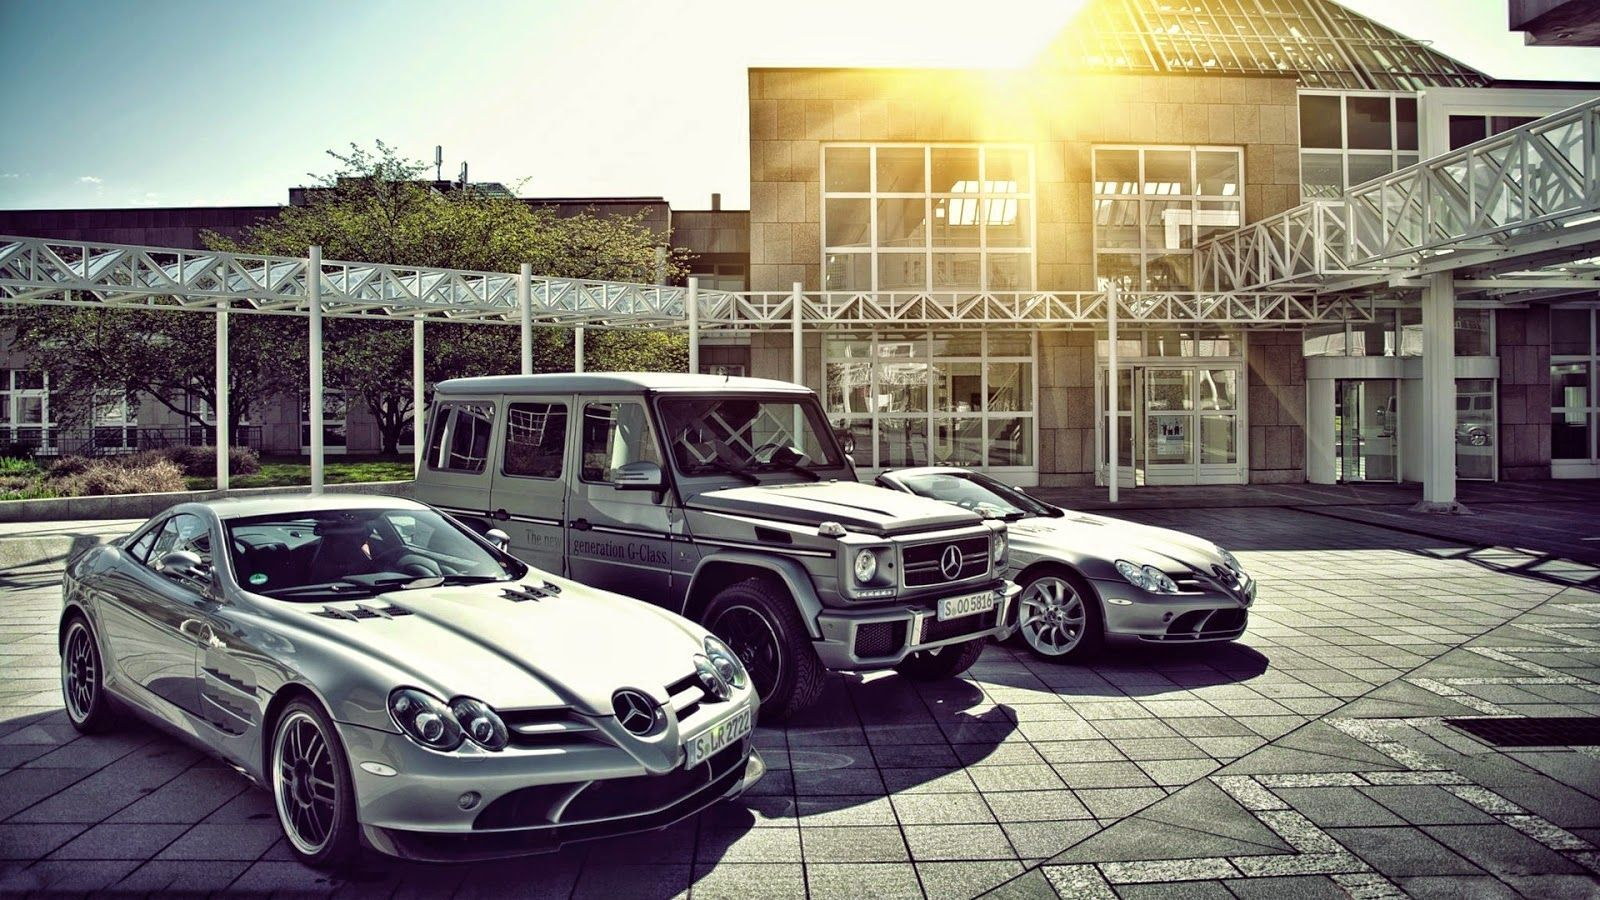 Mercedes Cars Wallpapers For Free Download About